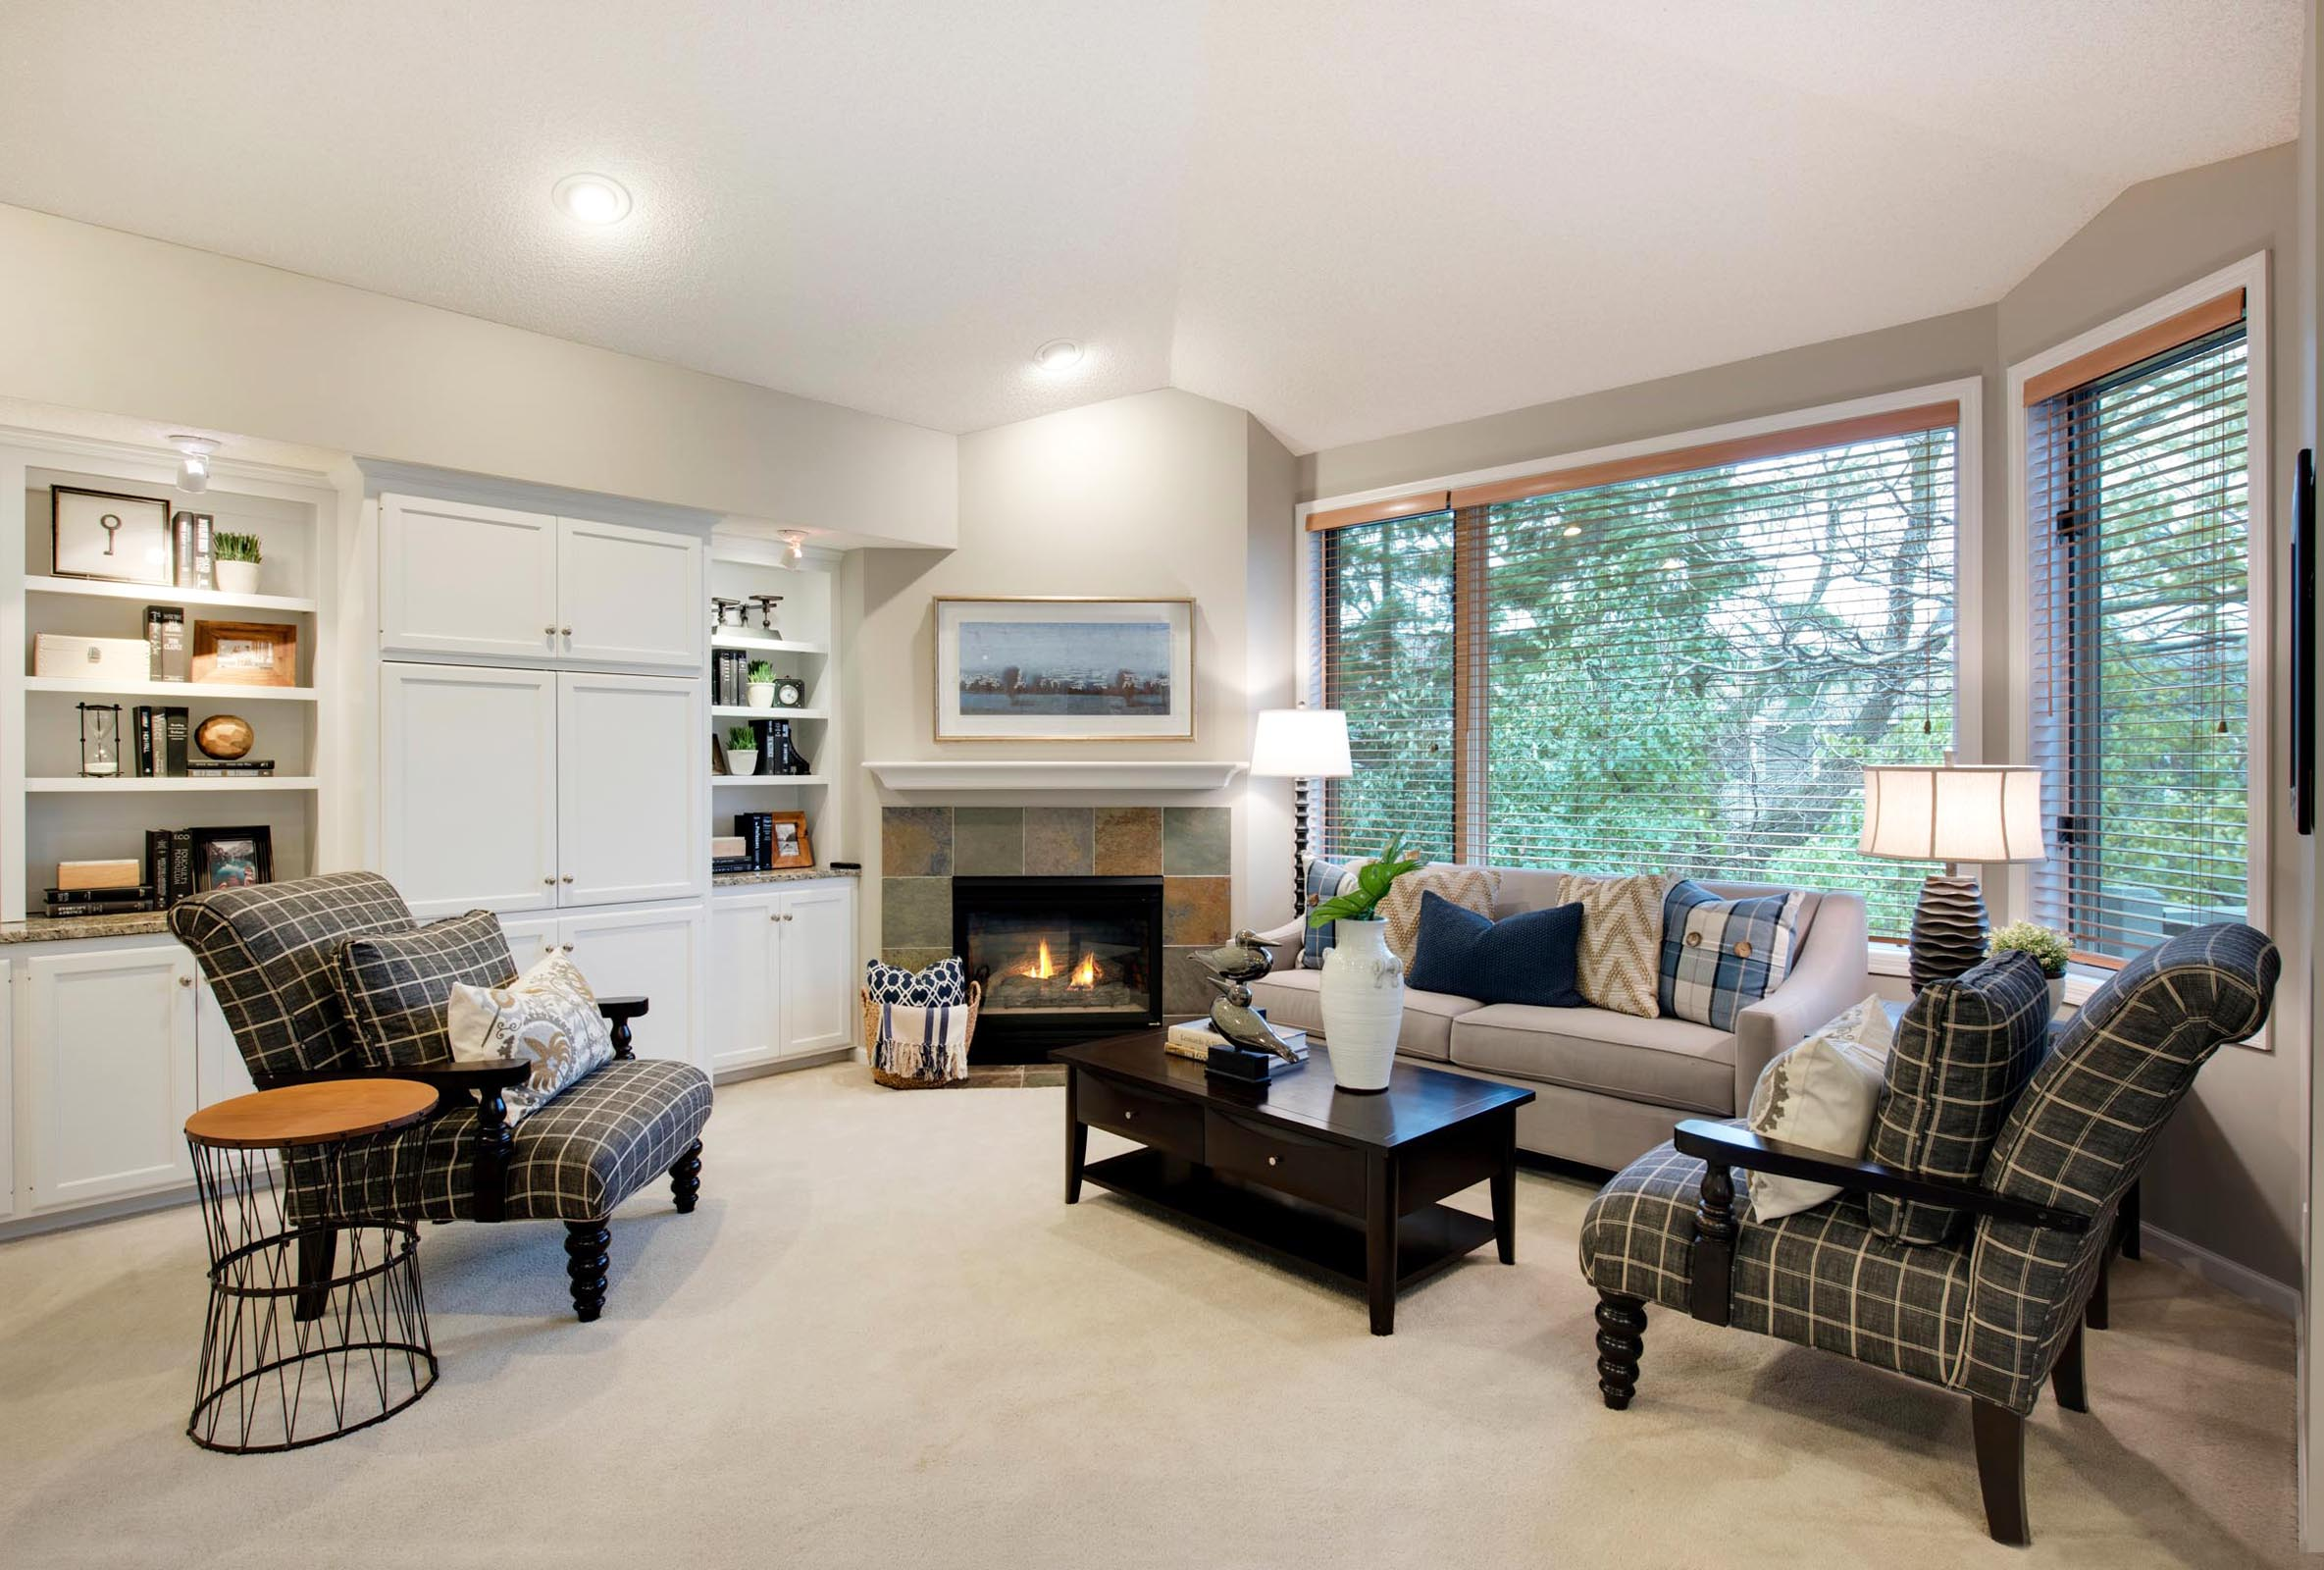 Cozy furnished room around an inviting hearth